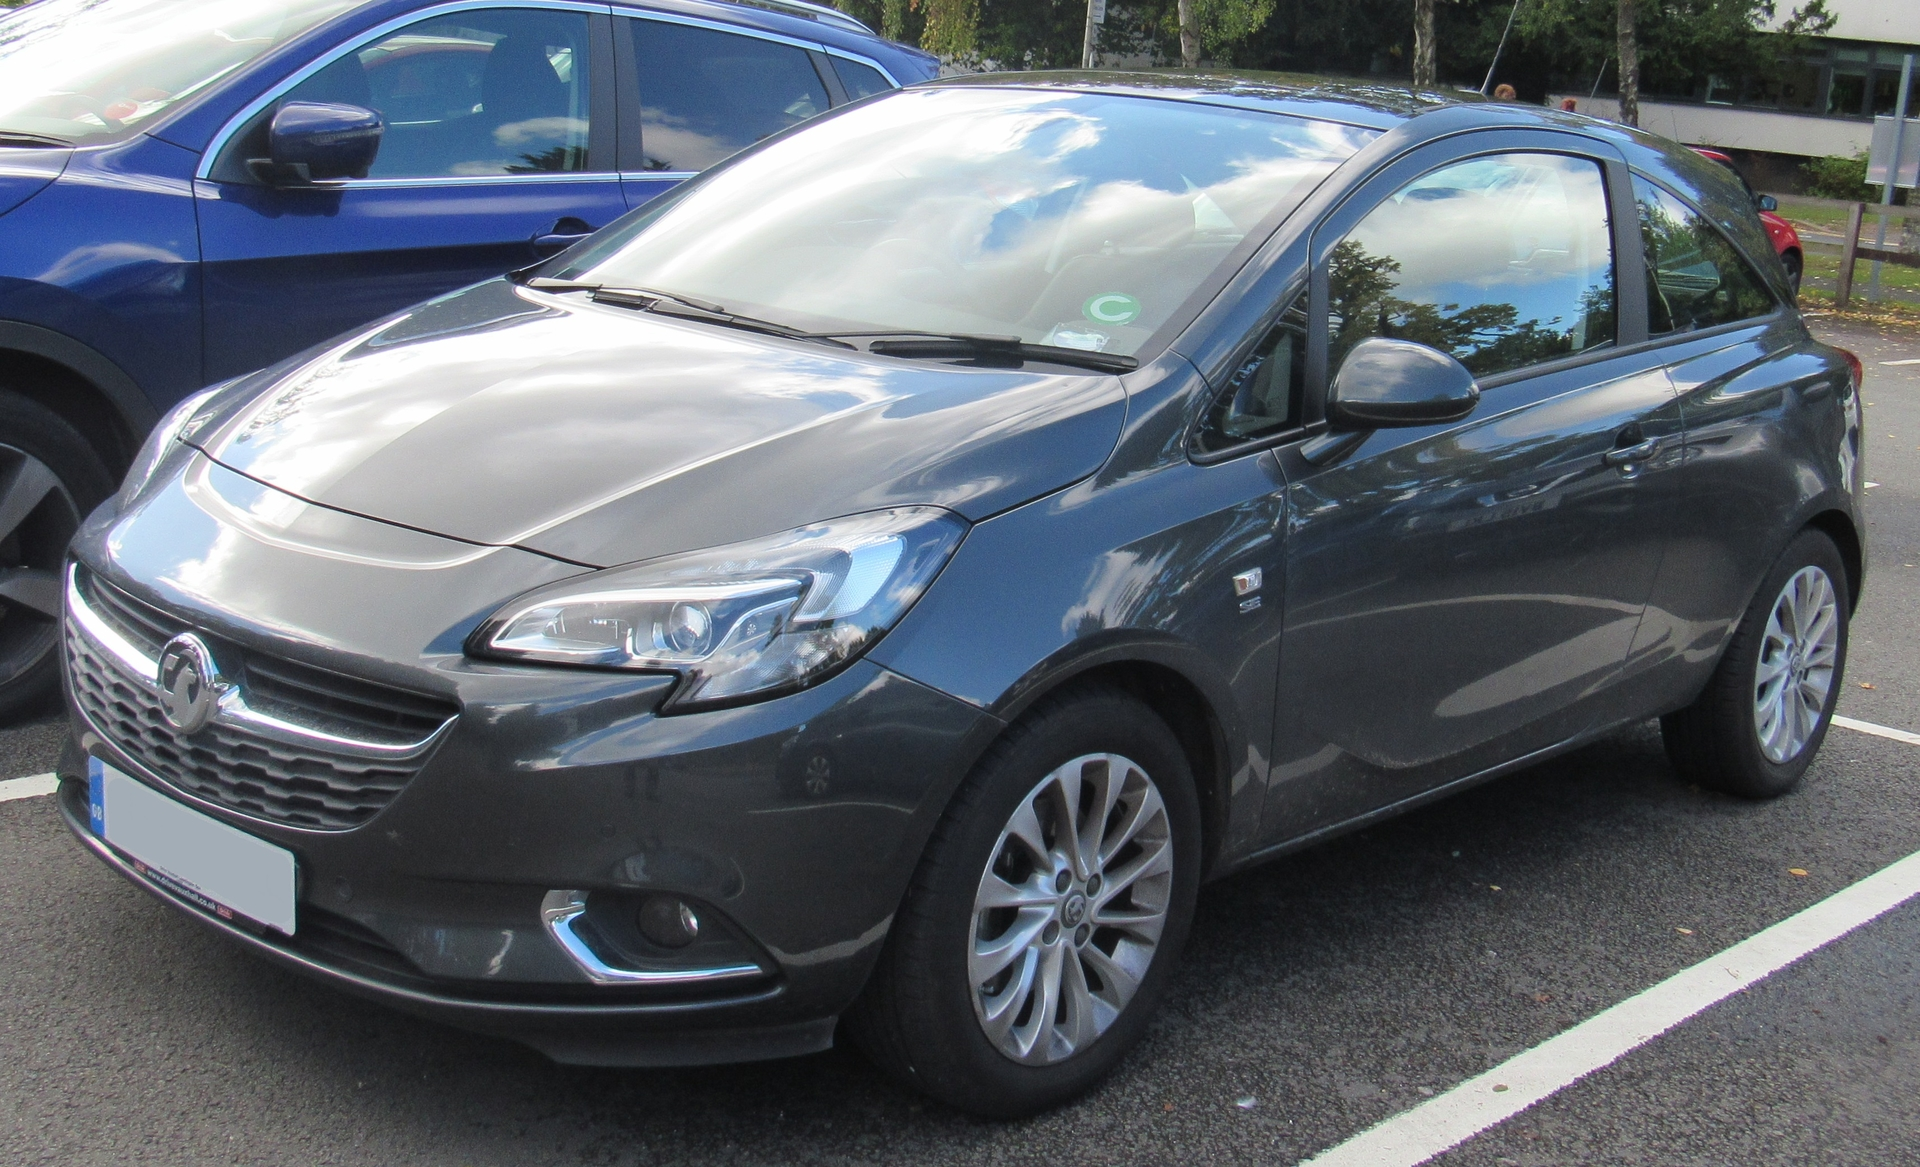 vauxhall corsa used car warranty